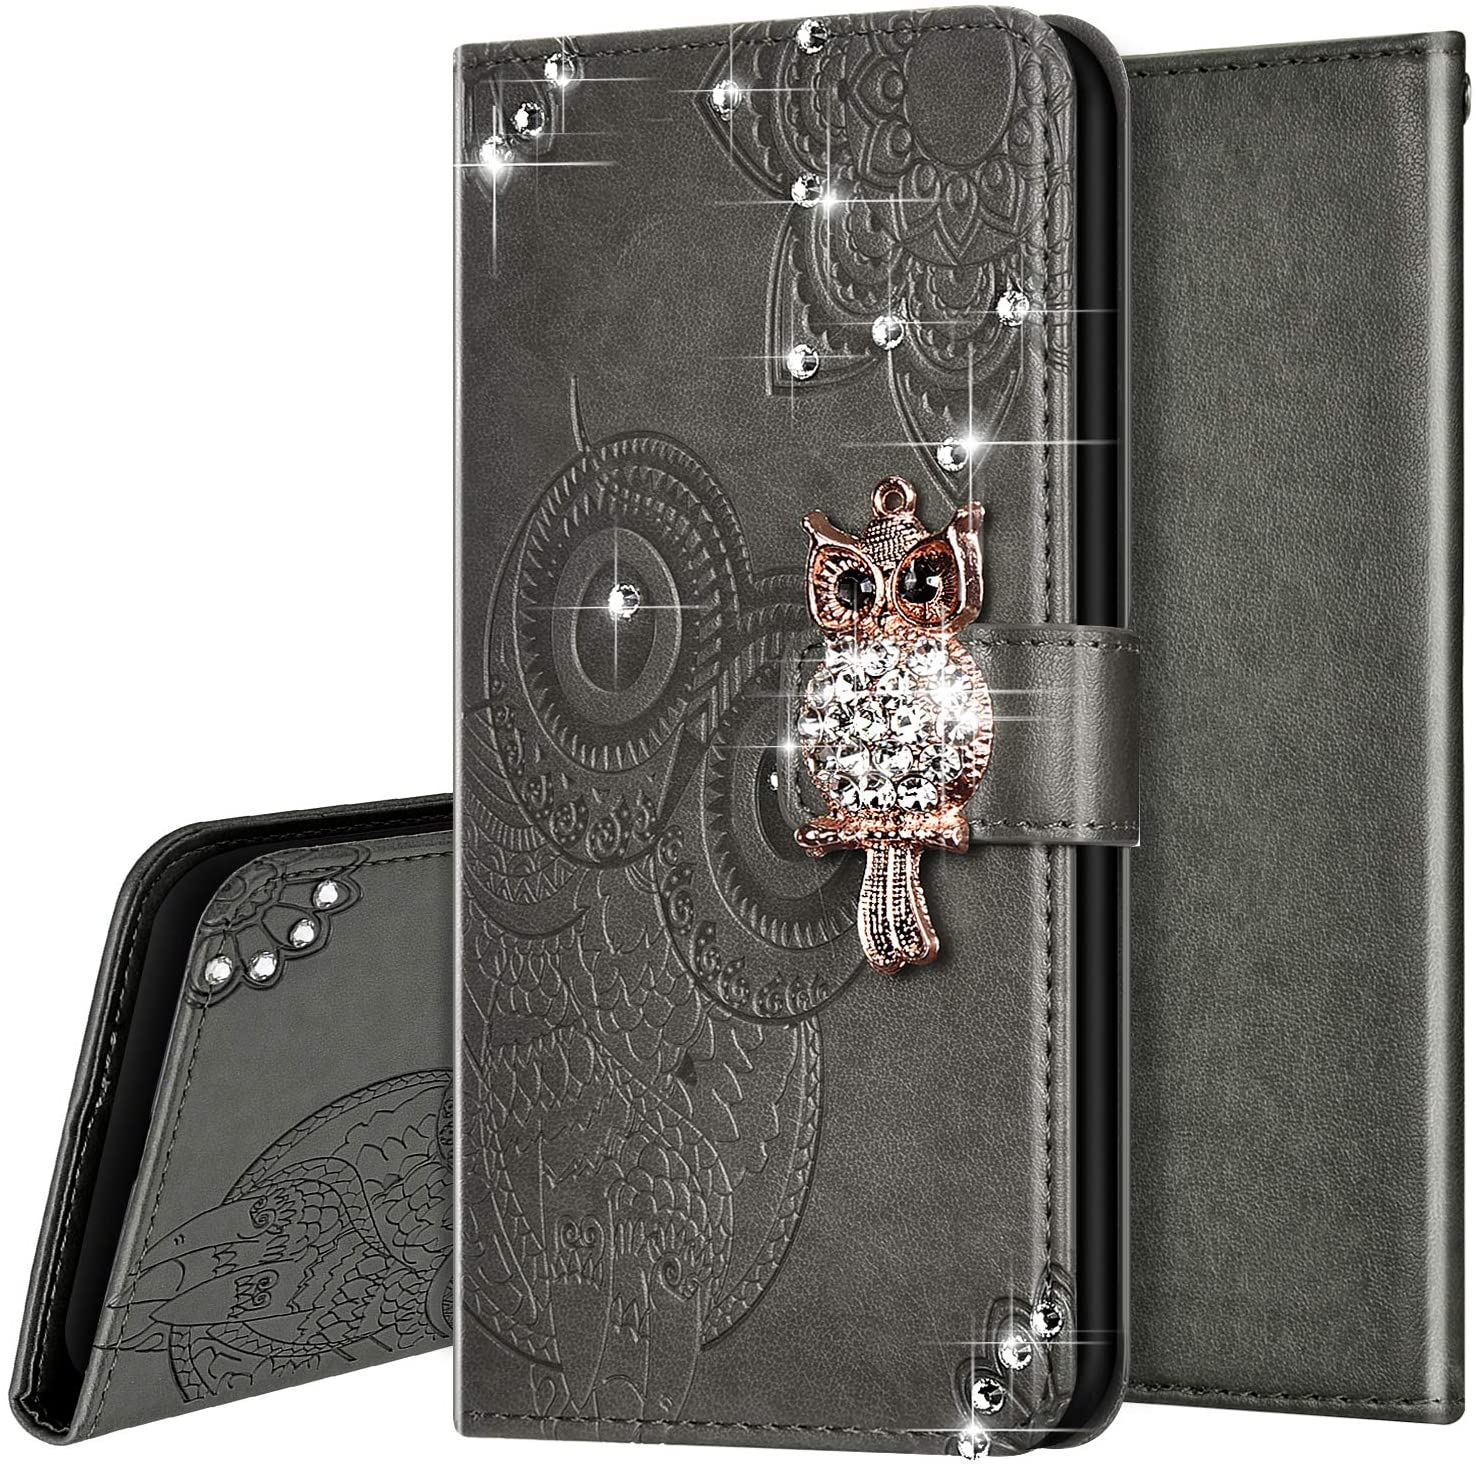 PHEZEN Case for Samsung Galaxy S20 Ultra Bling Wallet Case,Luxury 3D Bling Crystal Rhinestone Owl Floral PU Leather Wallet Flip Case With Card Slots & Kickstand for Galaxy S20 Ultra,Grey